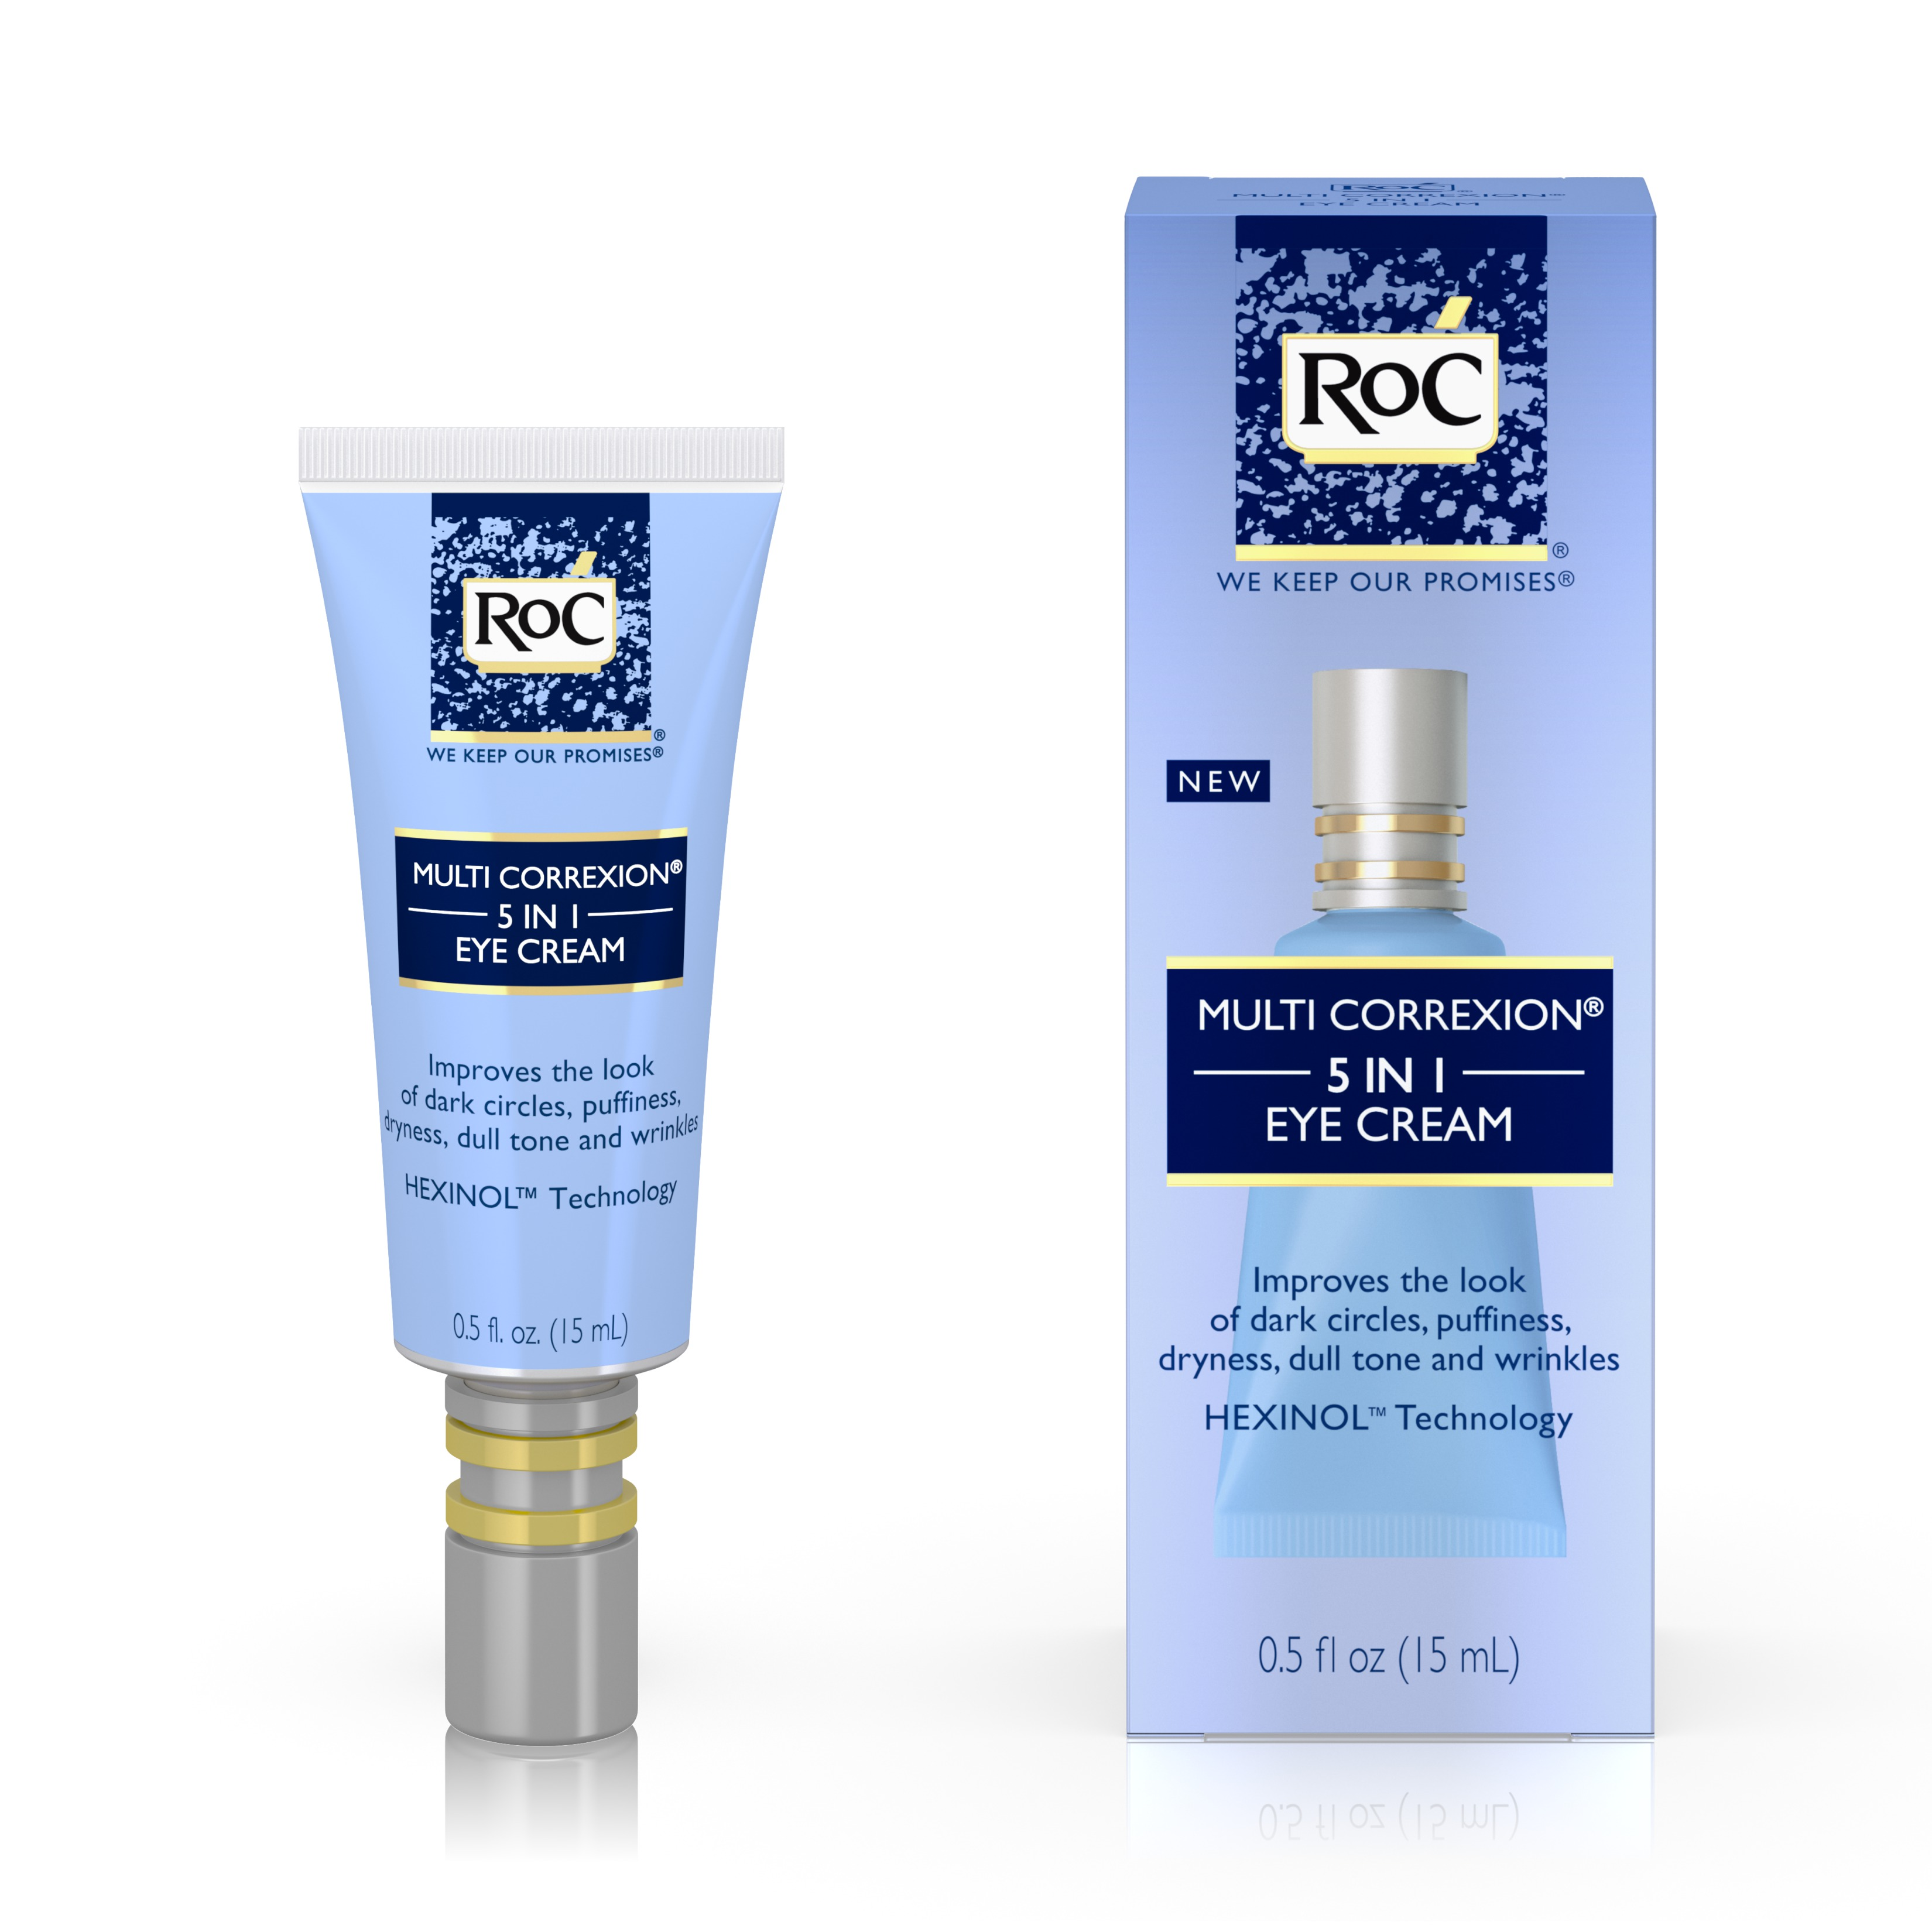 RoC Multi Correxion 5 in 1 Eye Cream, Anti-Aging Treatment,.5 fl. oz